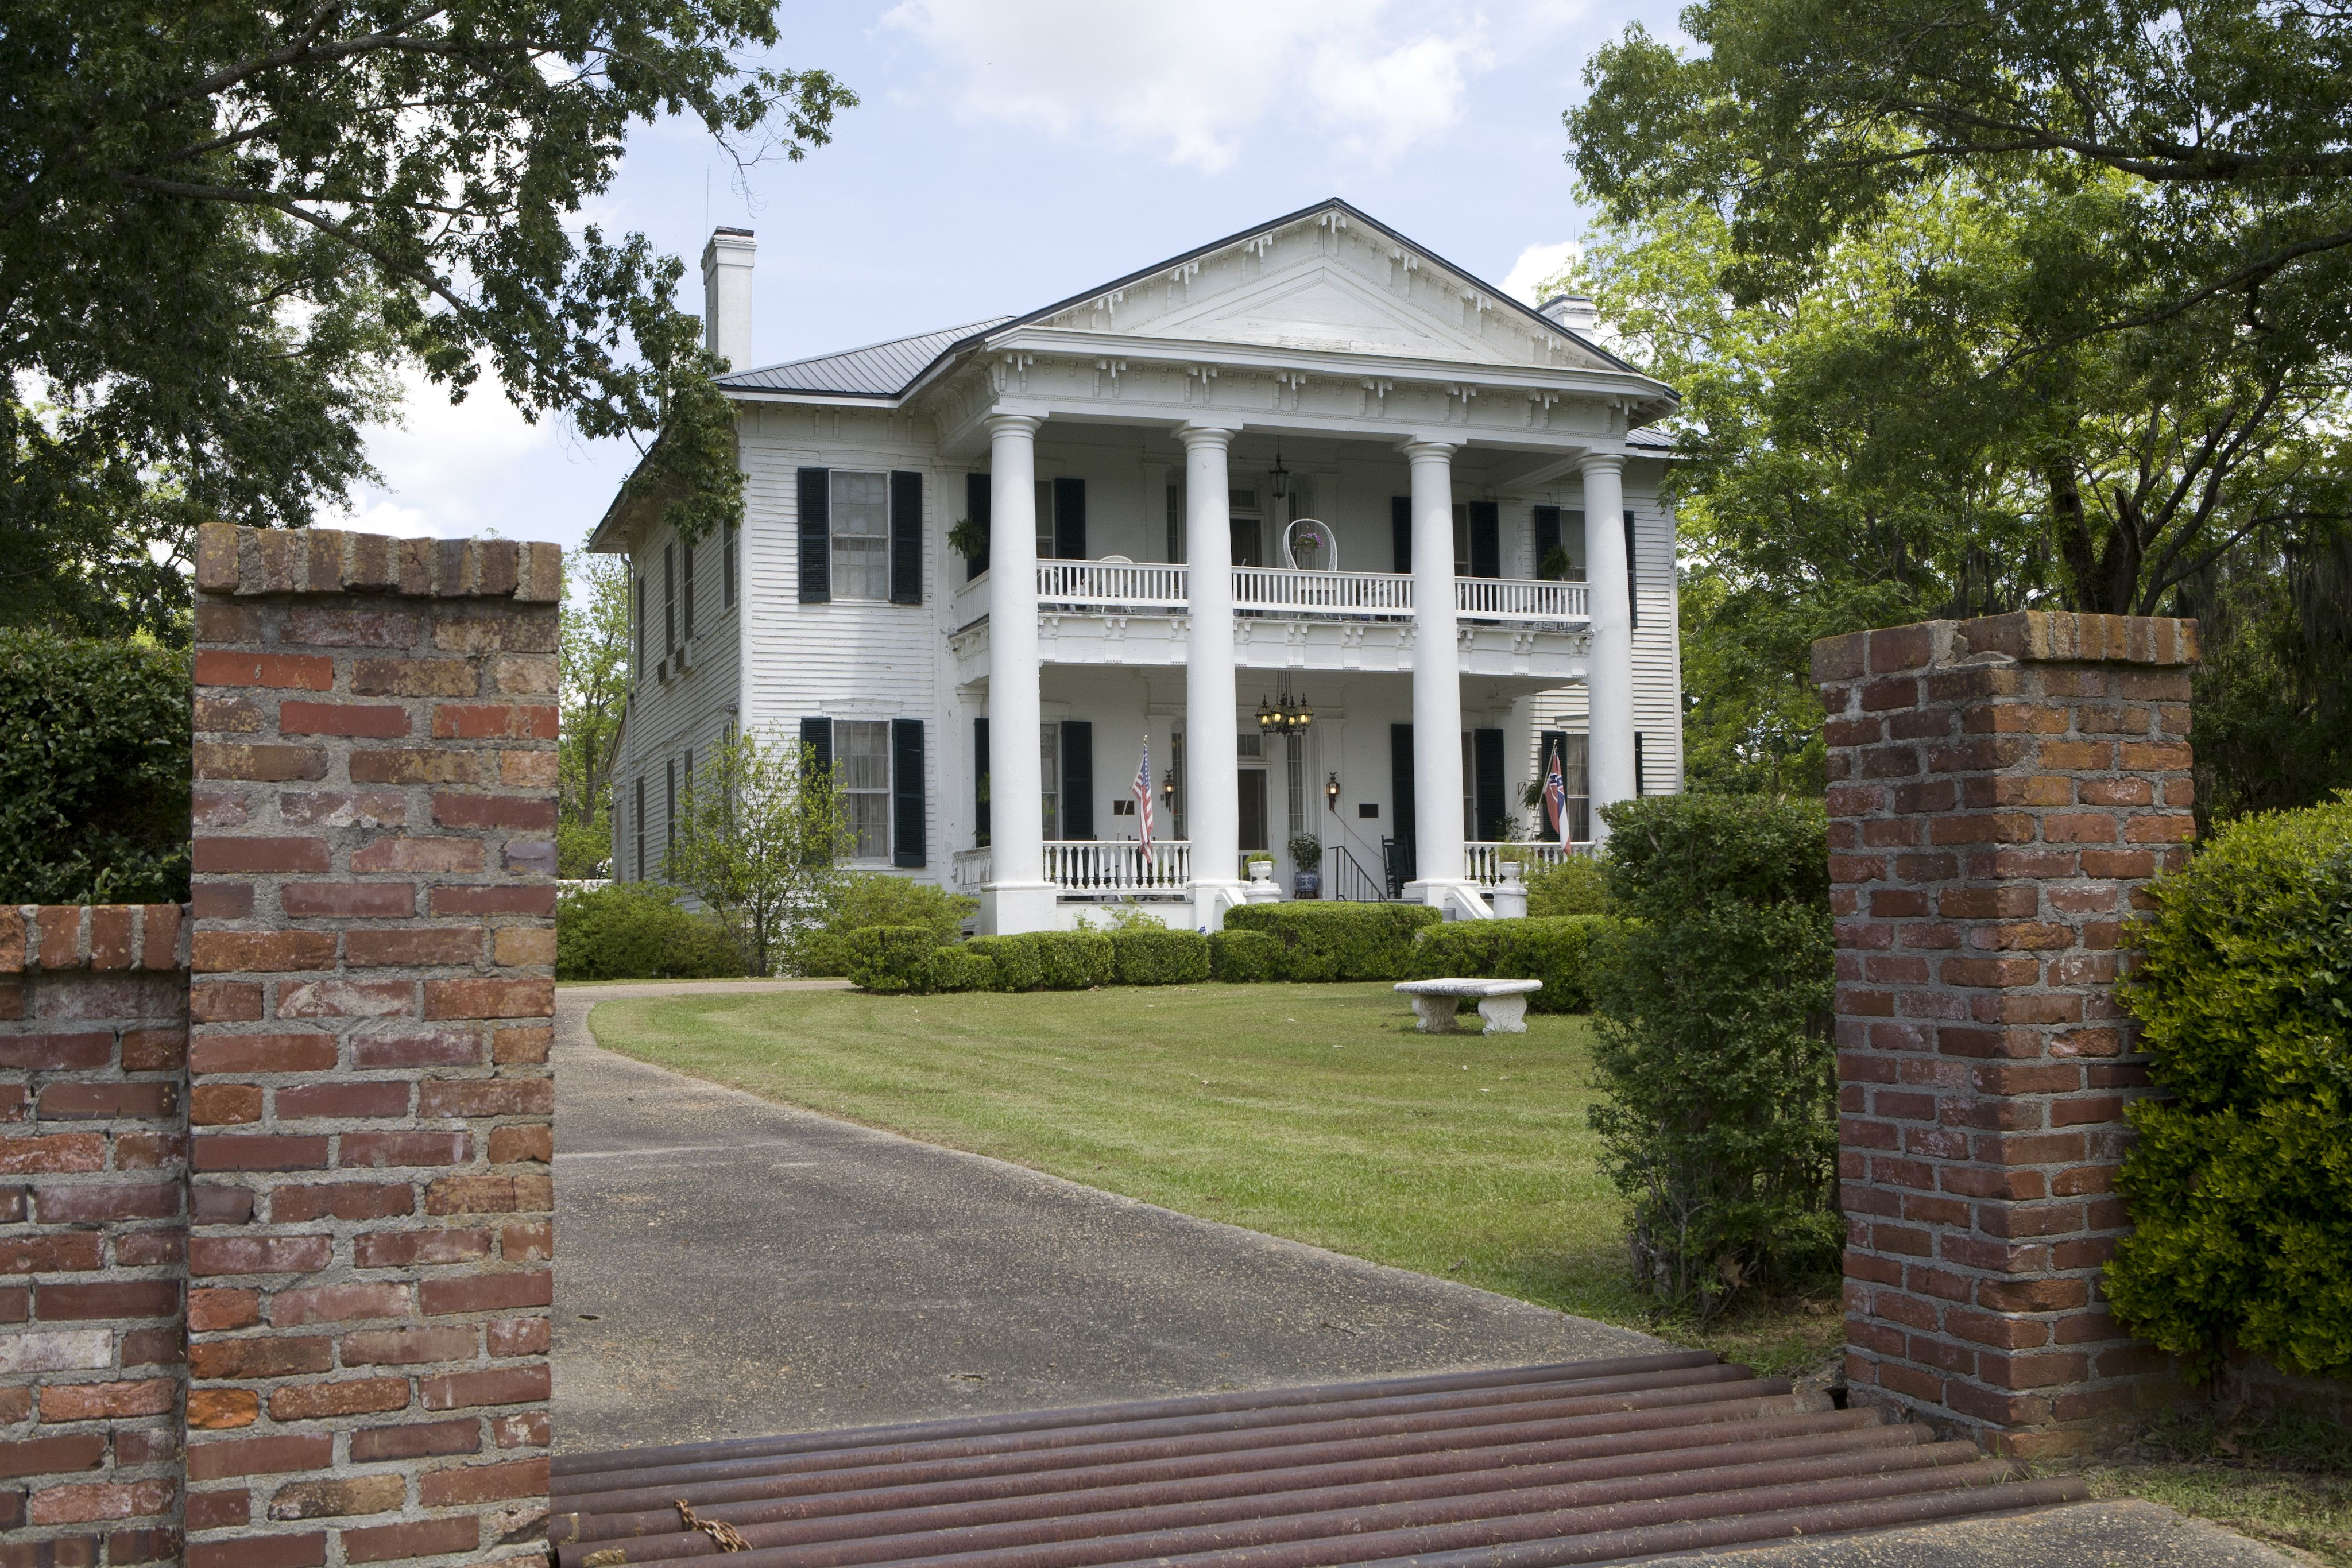 Rosswood Plantation in Lorman is a historic 1857 cotton plantation